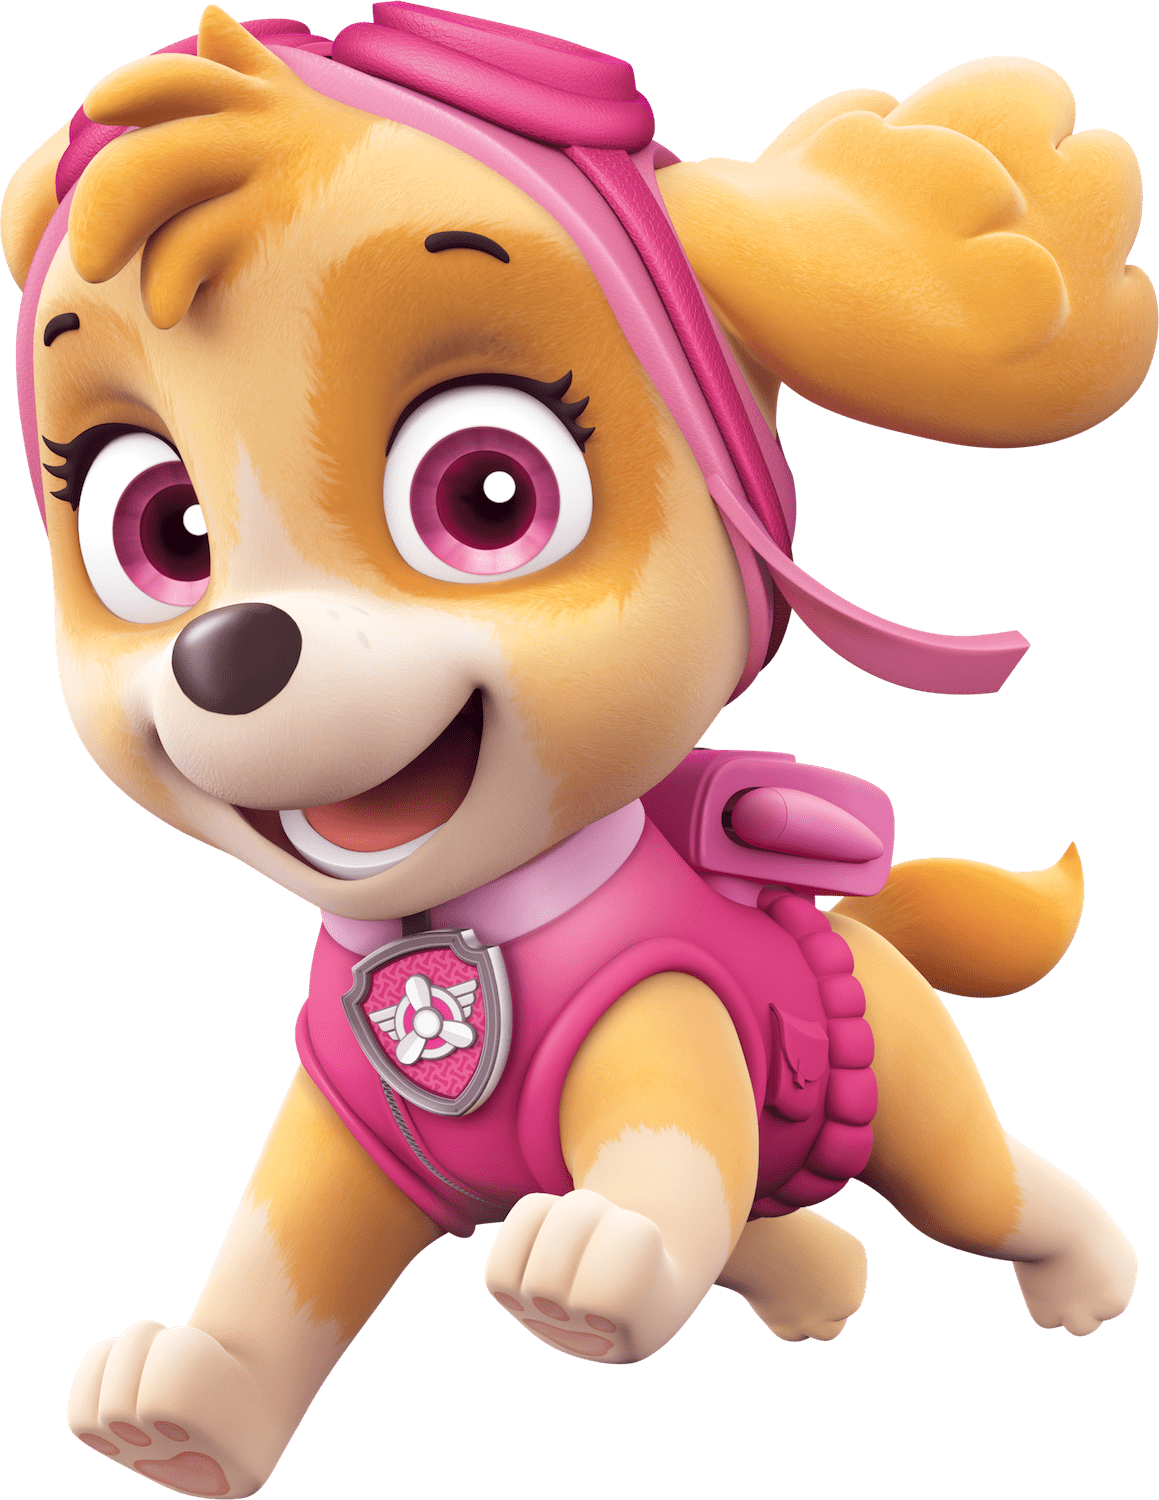 Pink paw patrol logo clipart picture black and white download Happy Paw Patrol Photos - 14105 - TransparentPNG picture black and white download